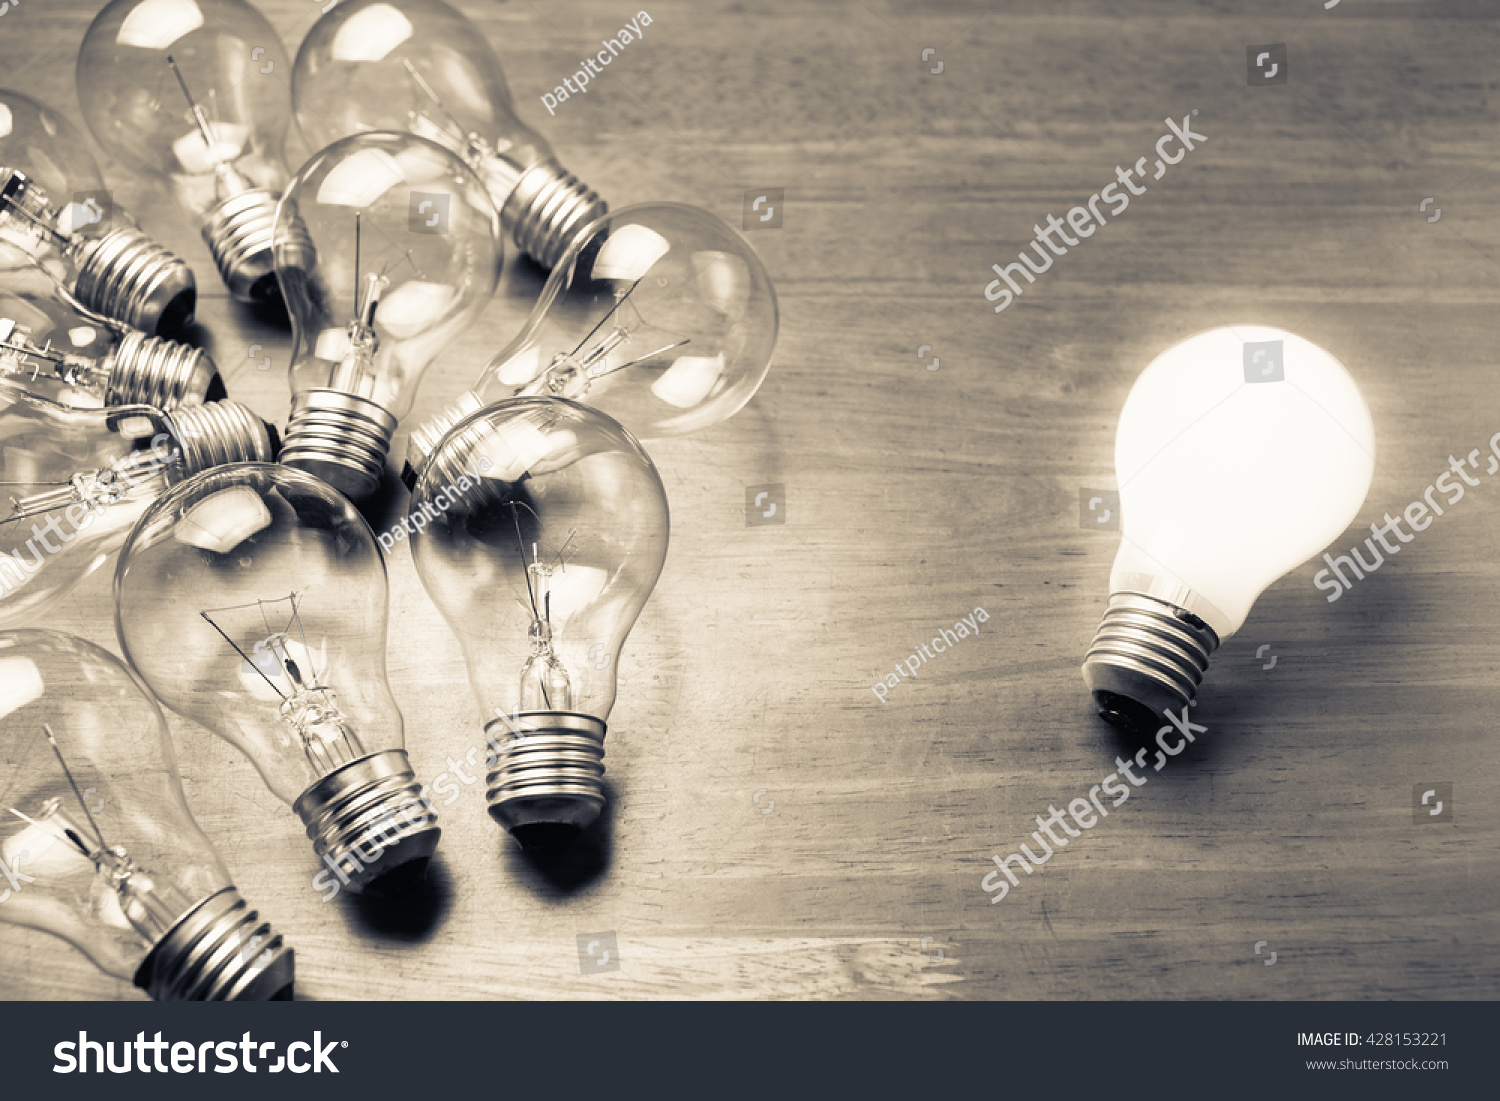 white light bulb glowing separate others の写真素材 今すぐ編集